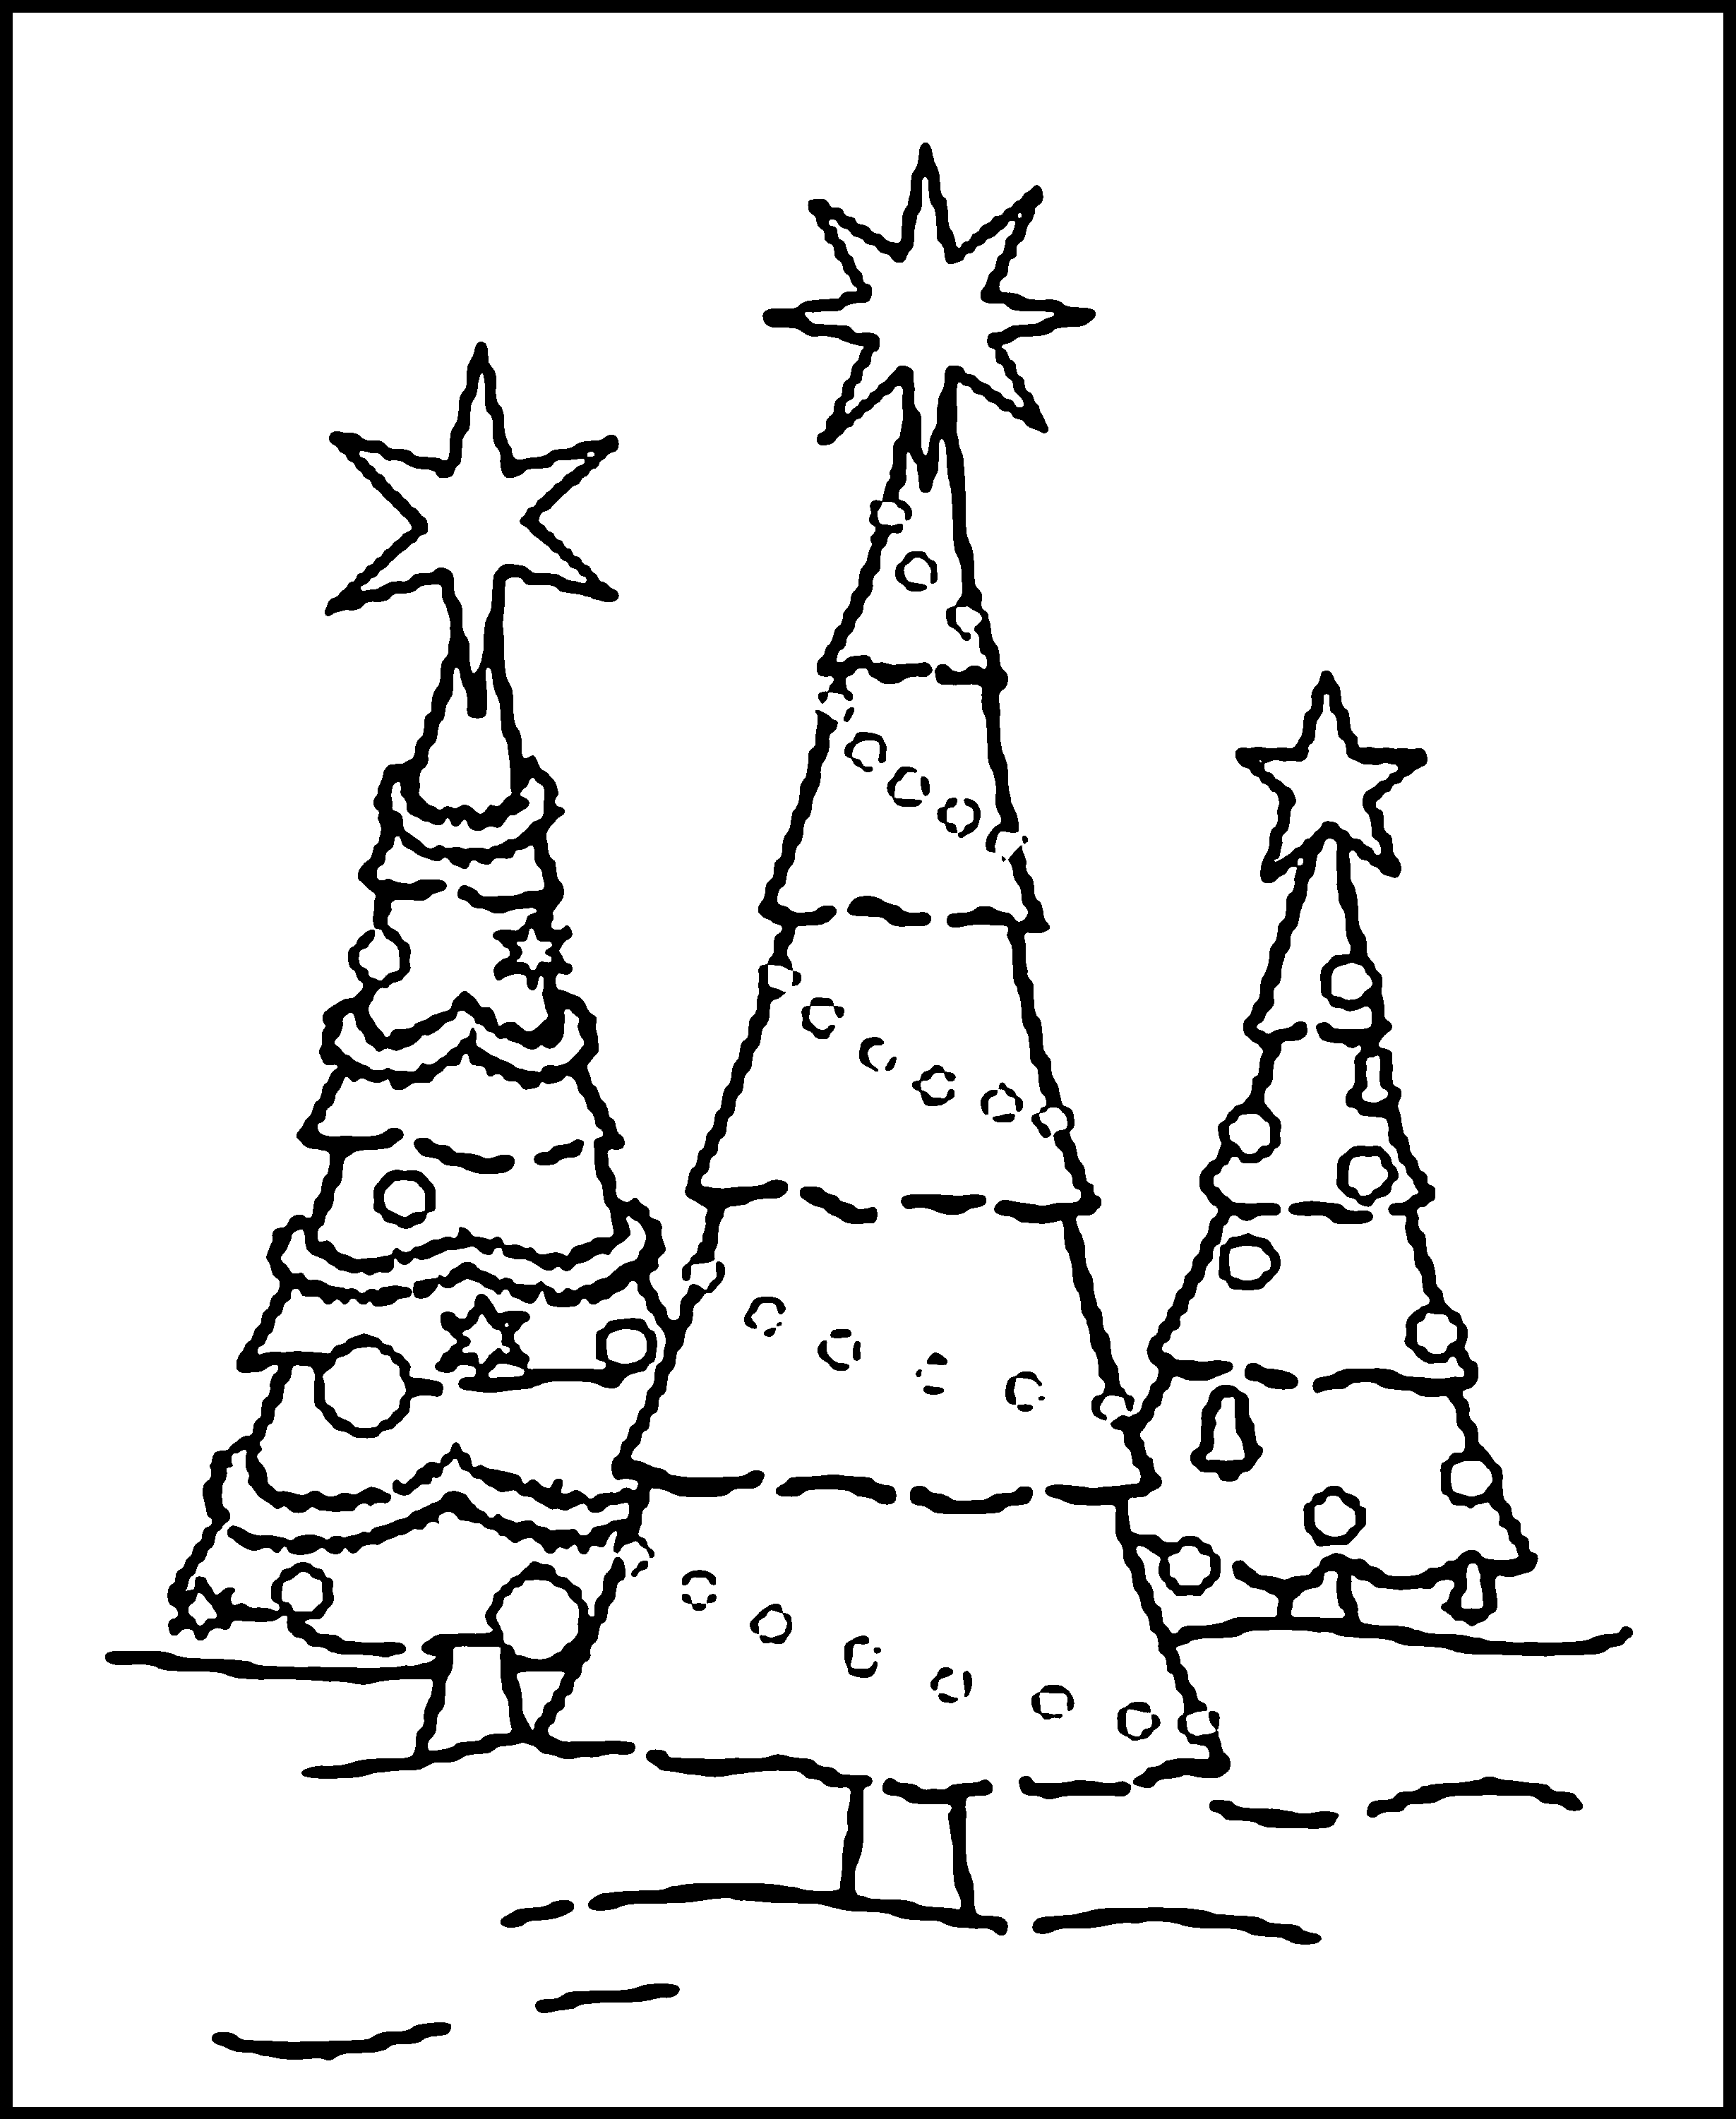 christmas tree to color craftsactvities and worksheets for preschooltoddler and color to christmas tree